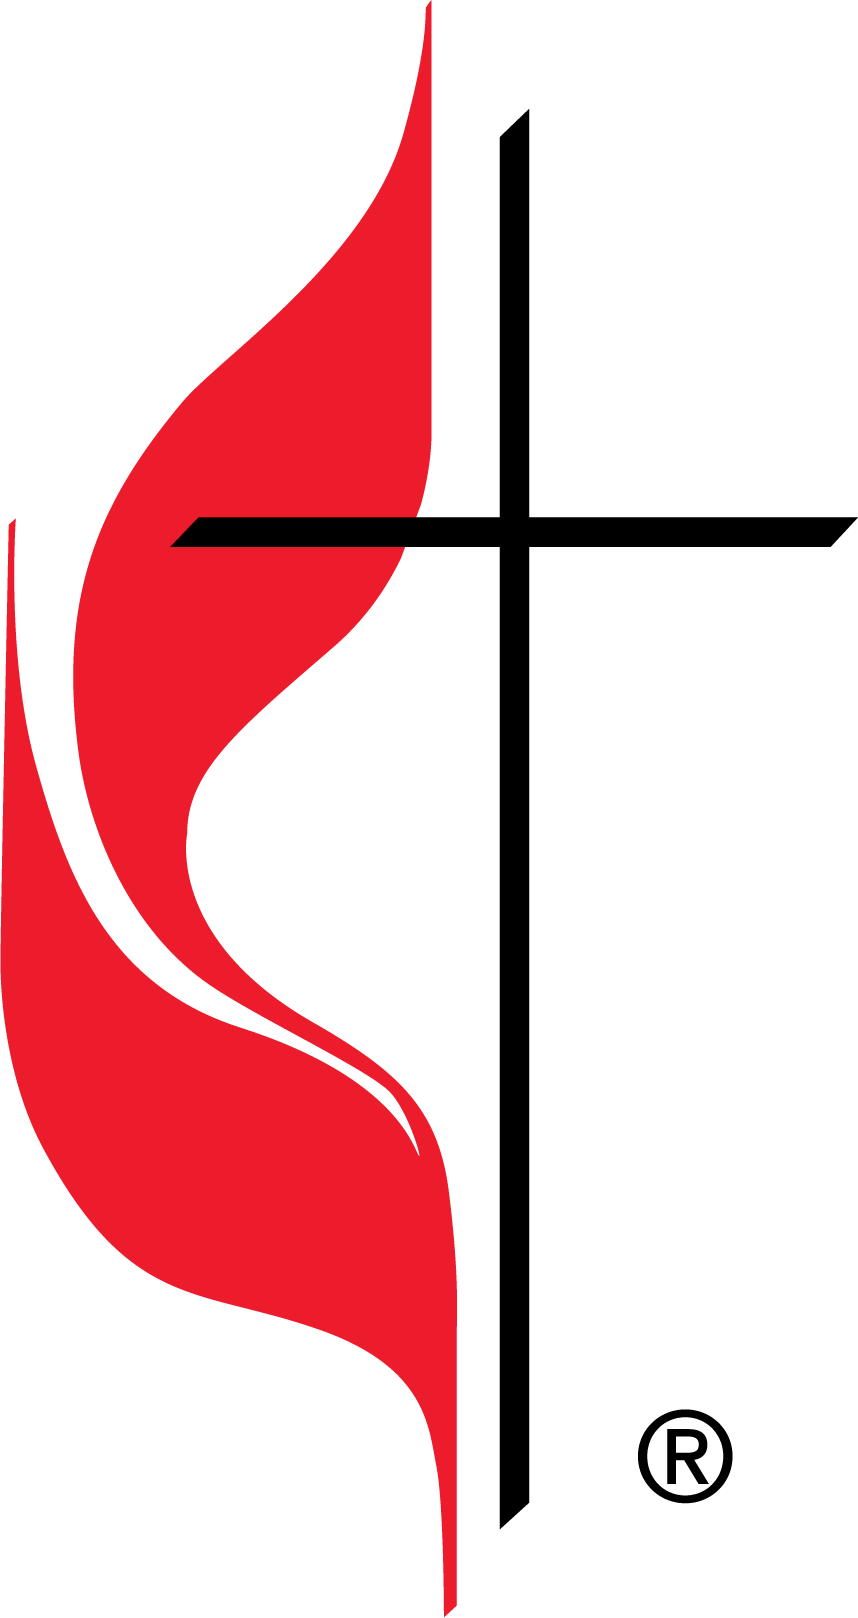 Cross and Flame - United Methodist Church